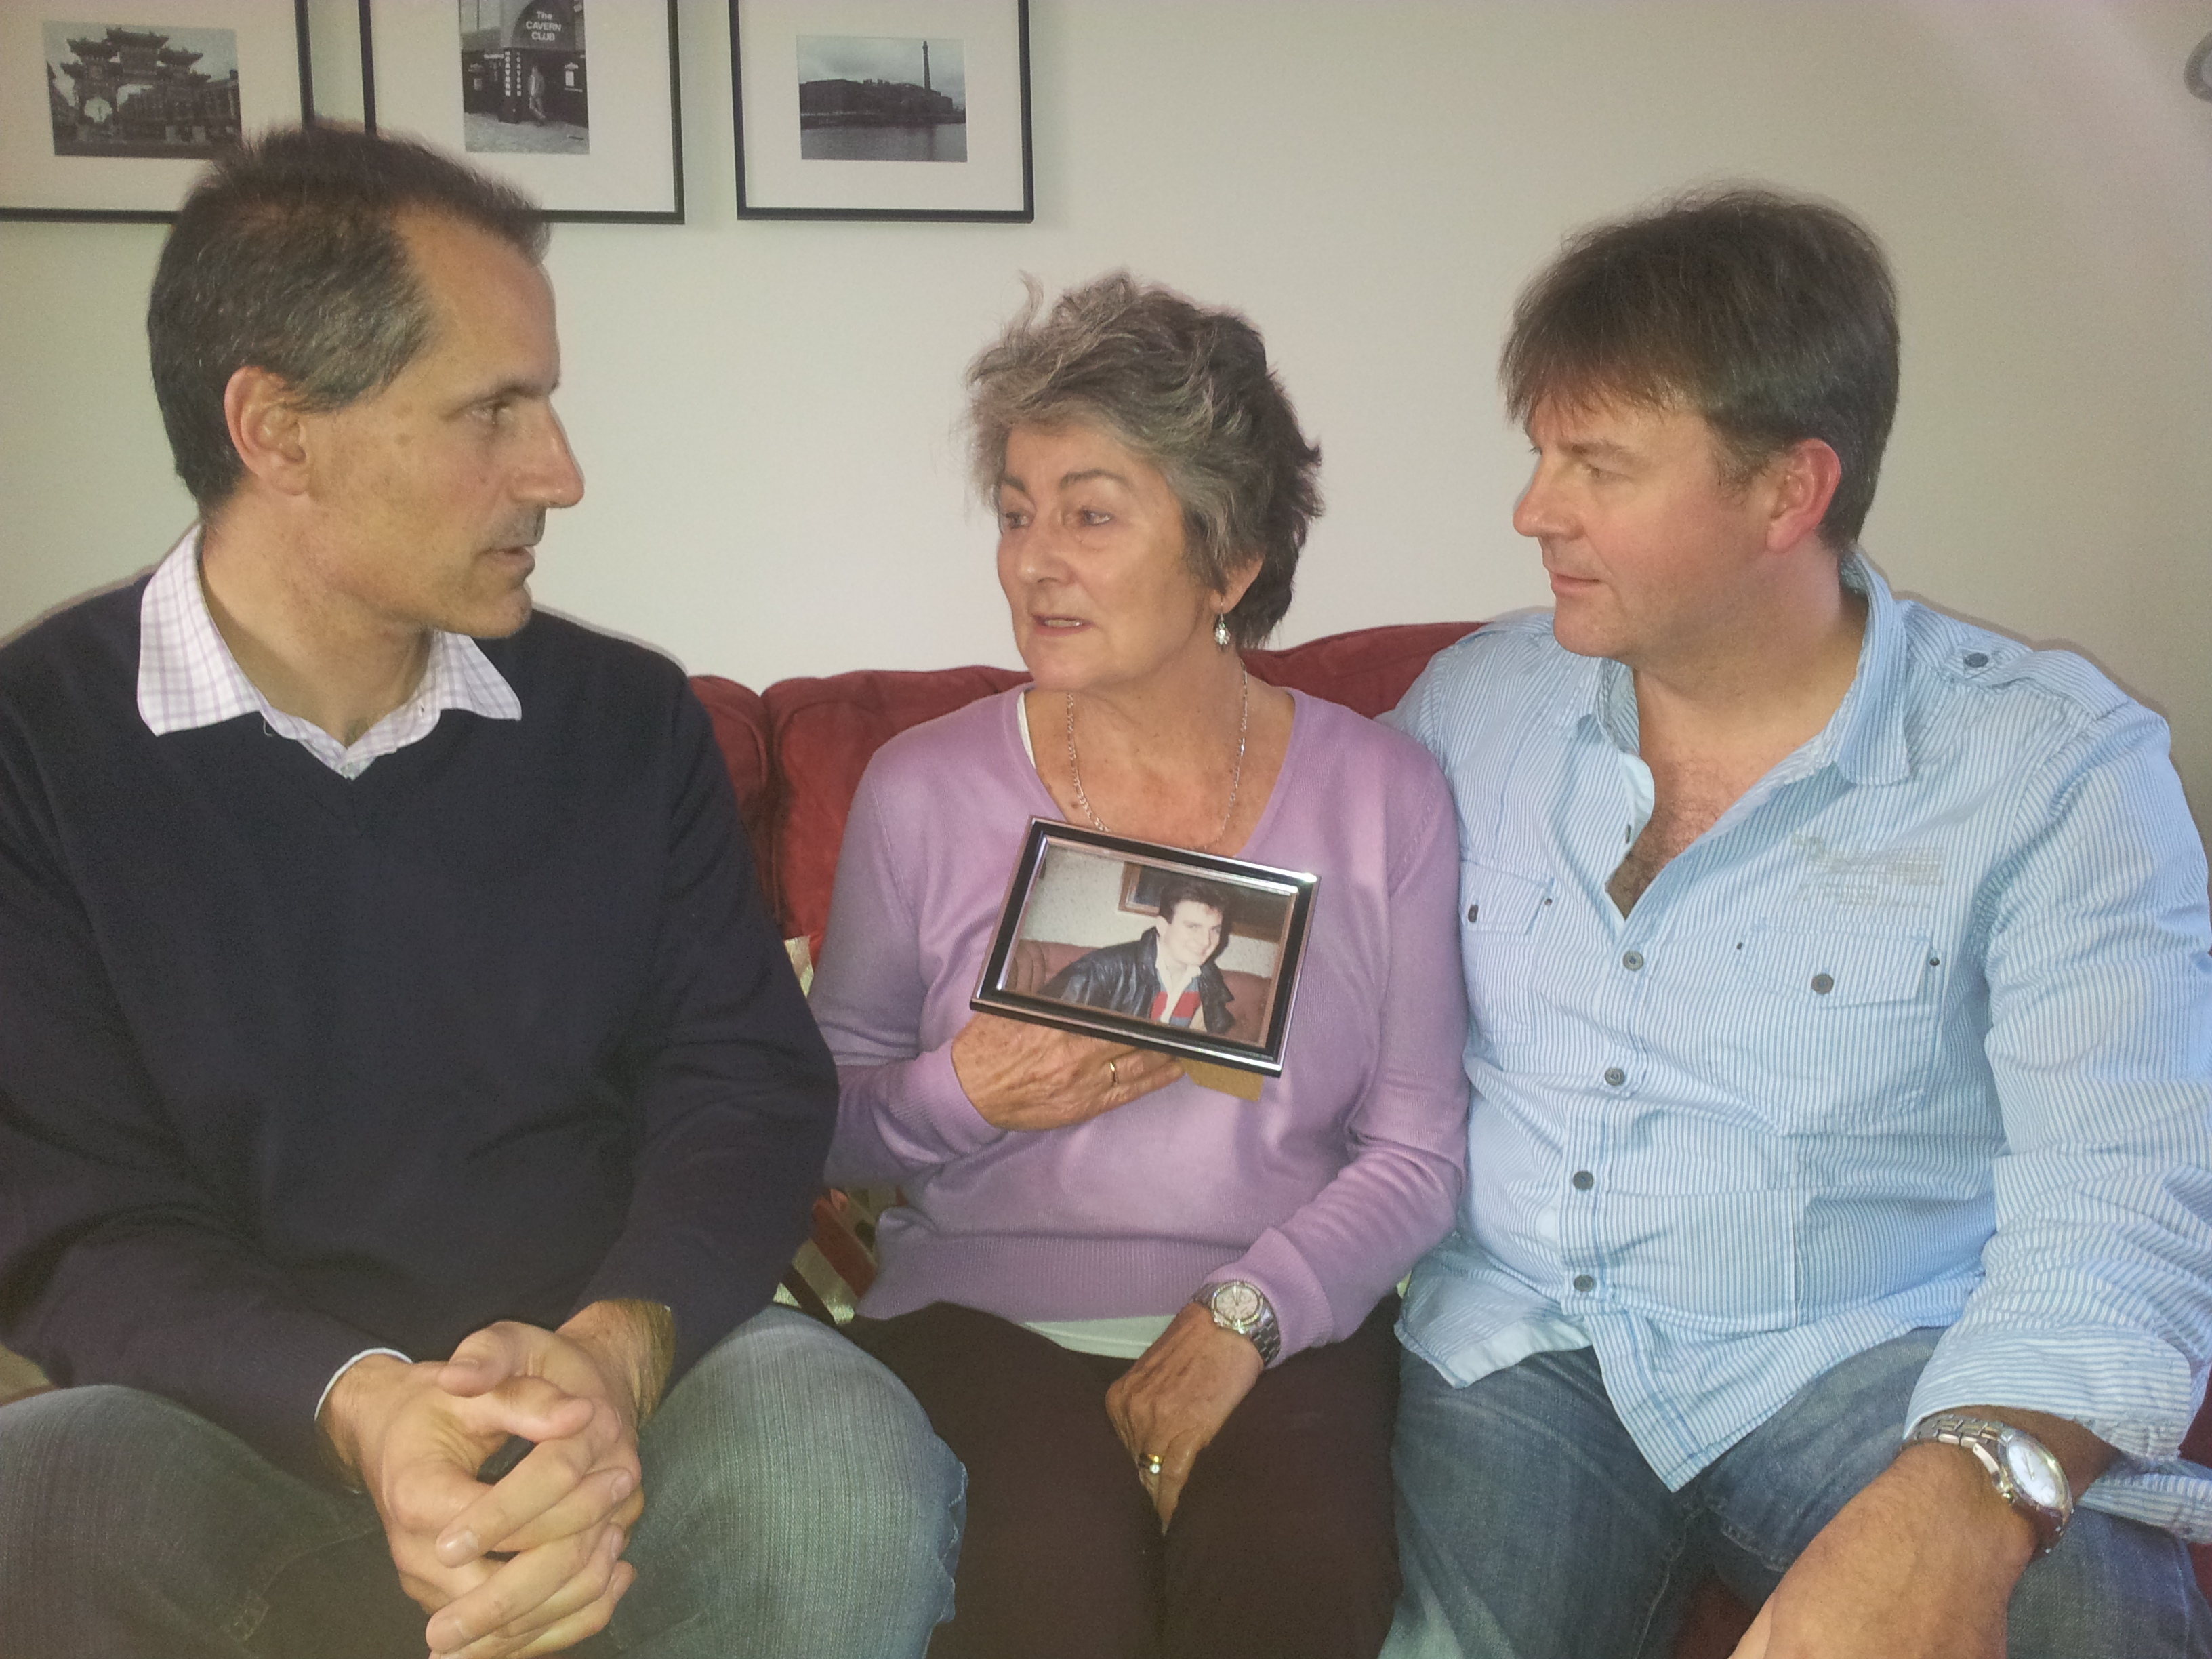 Sefton Central Labour MP Bill Esterson with mother and brother of Hillsborough victim Stephen Robinson, Rose and Paul Robinson.